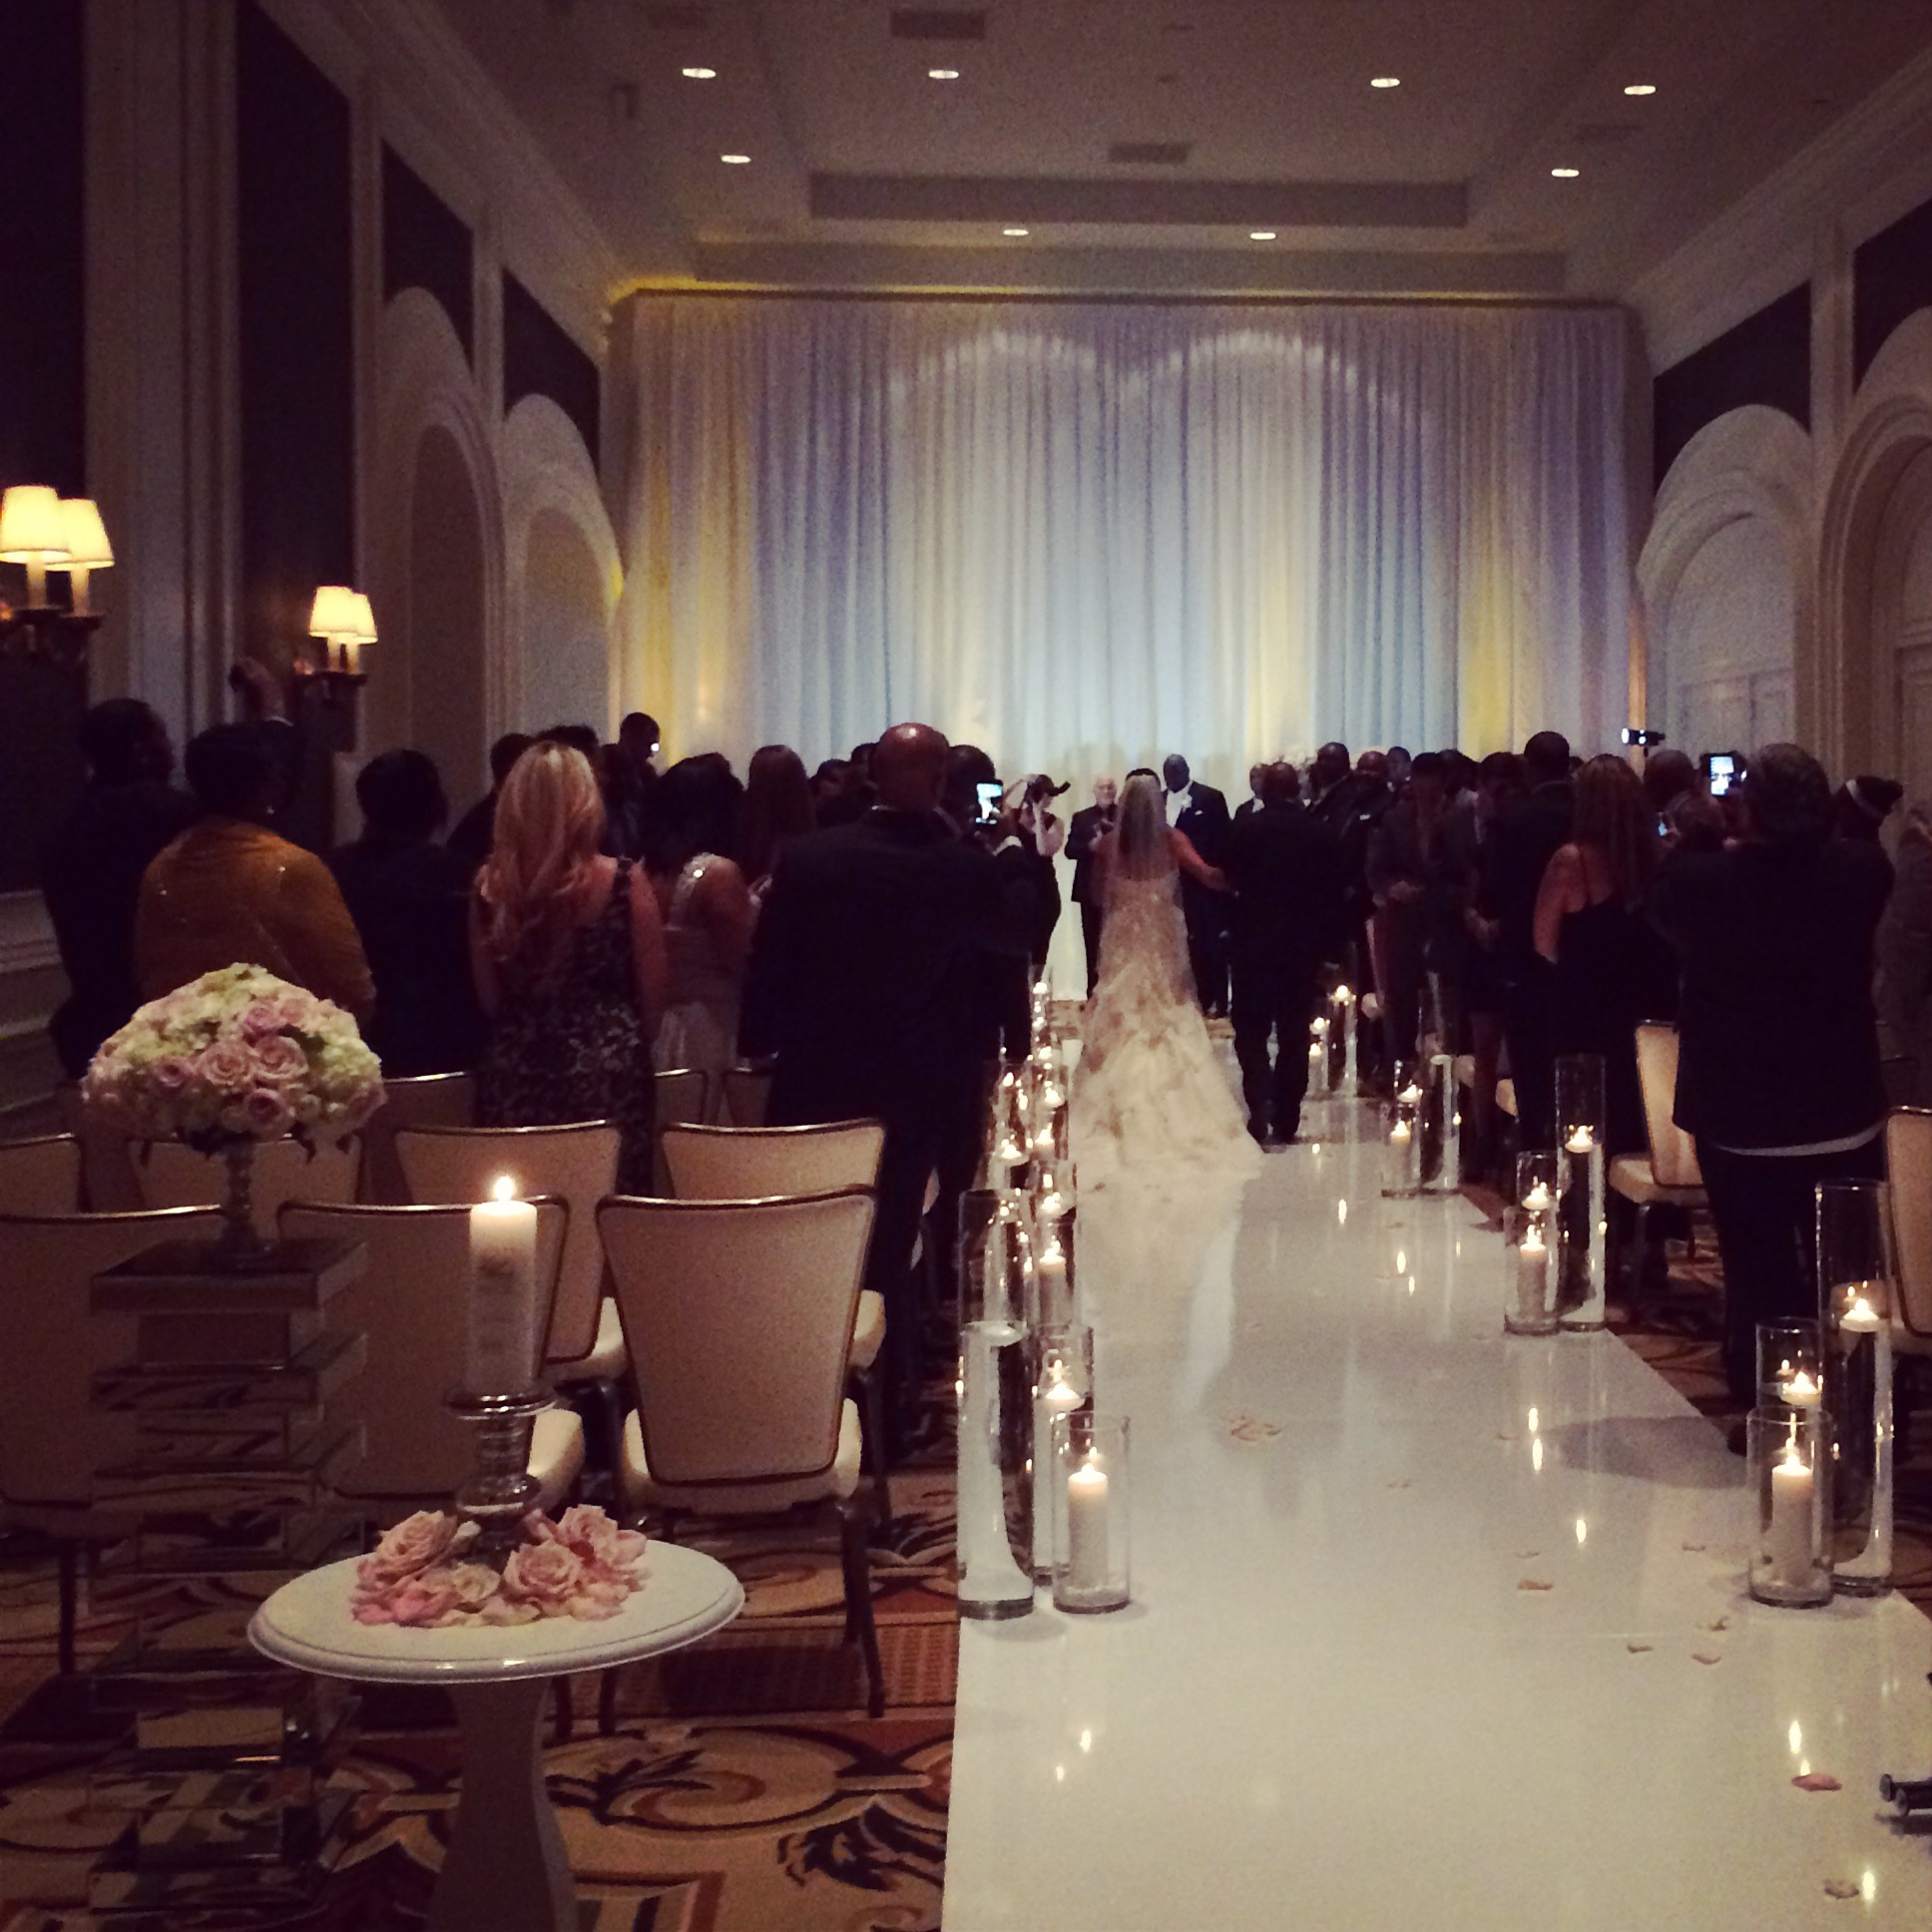 The bride was escorted down the aisle by her father, while a candle honoring her mother stood by.